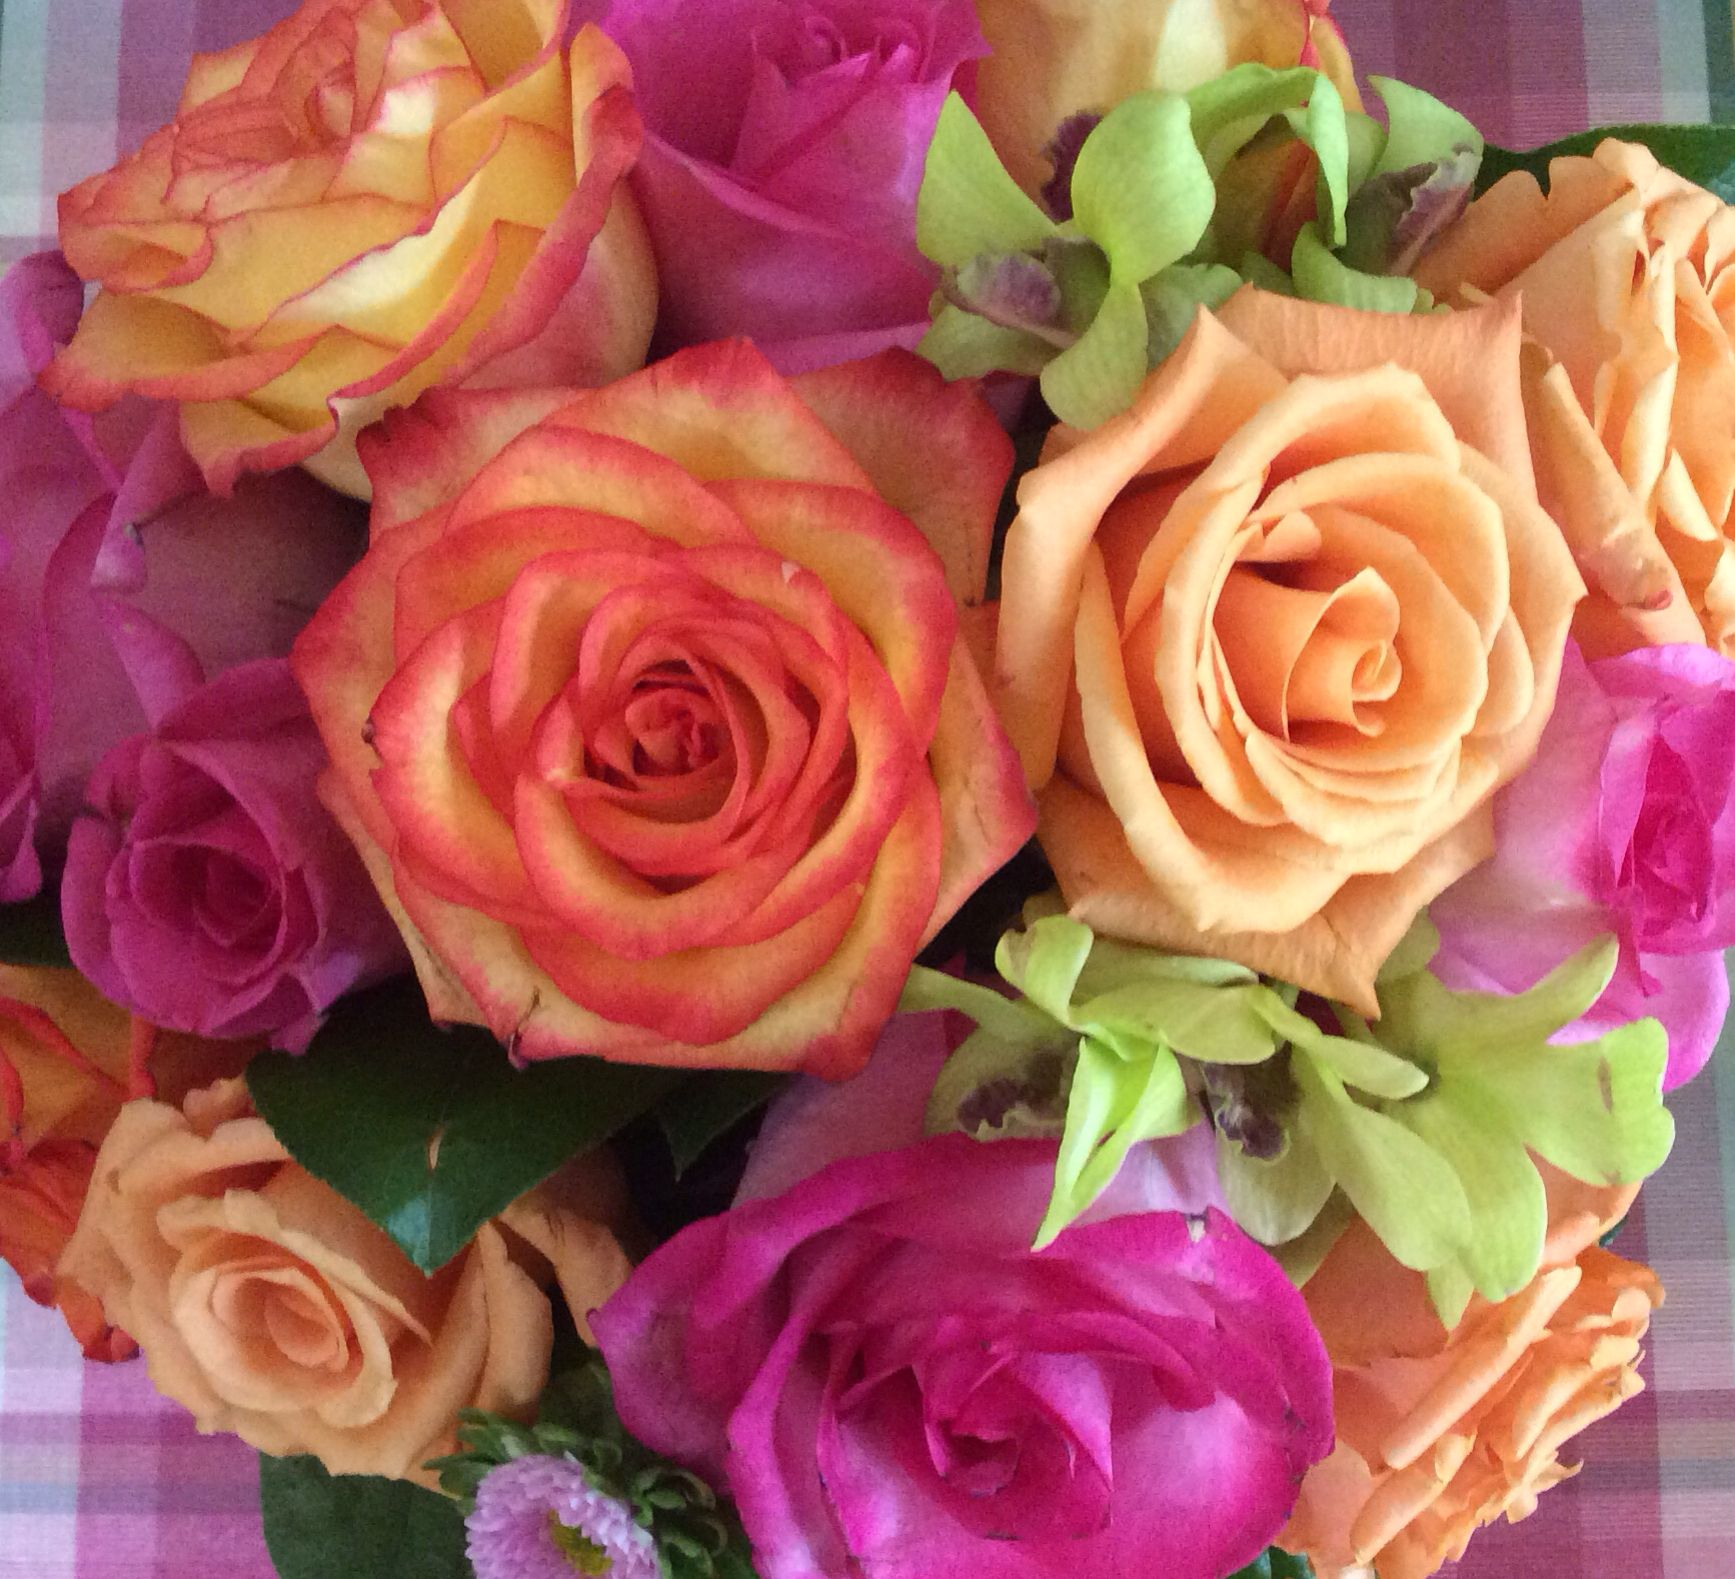 With this 'Spring Bouquet' Spring can't come soon enough.  Fuchsia Roses, Pale Orange Roses, Pale Orange w/Dark Orange Tipped Petals all accented with Kiwi Green Orchids.